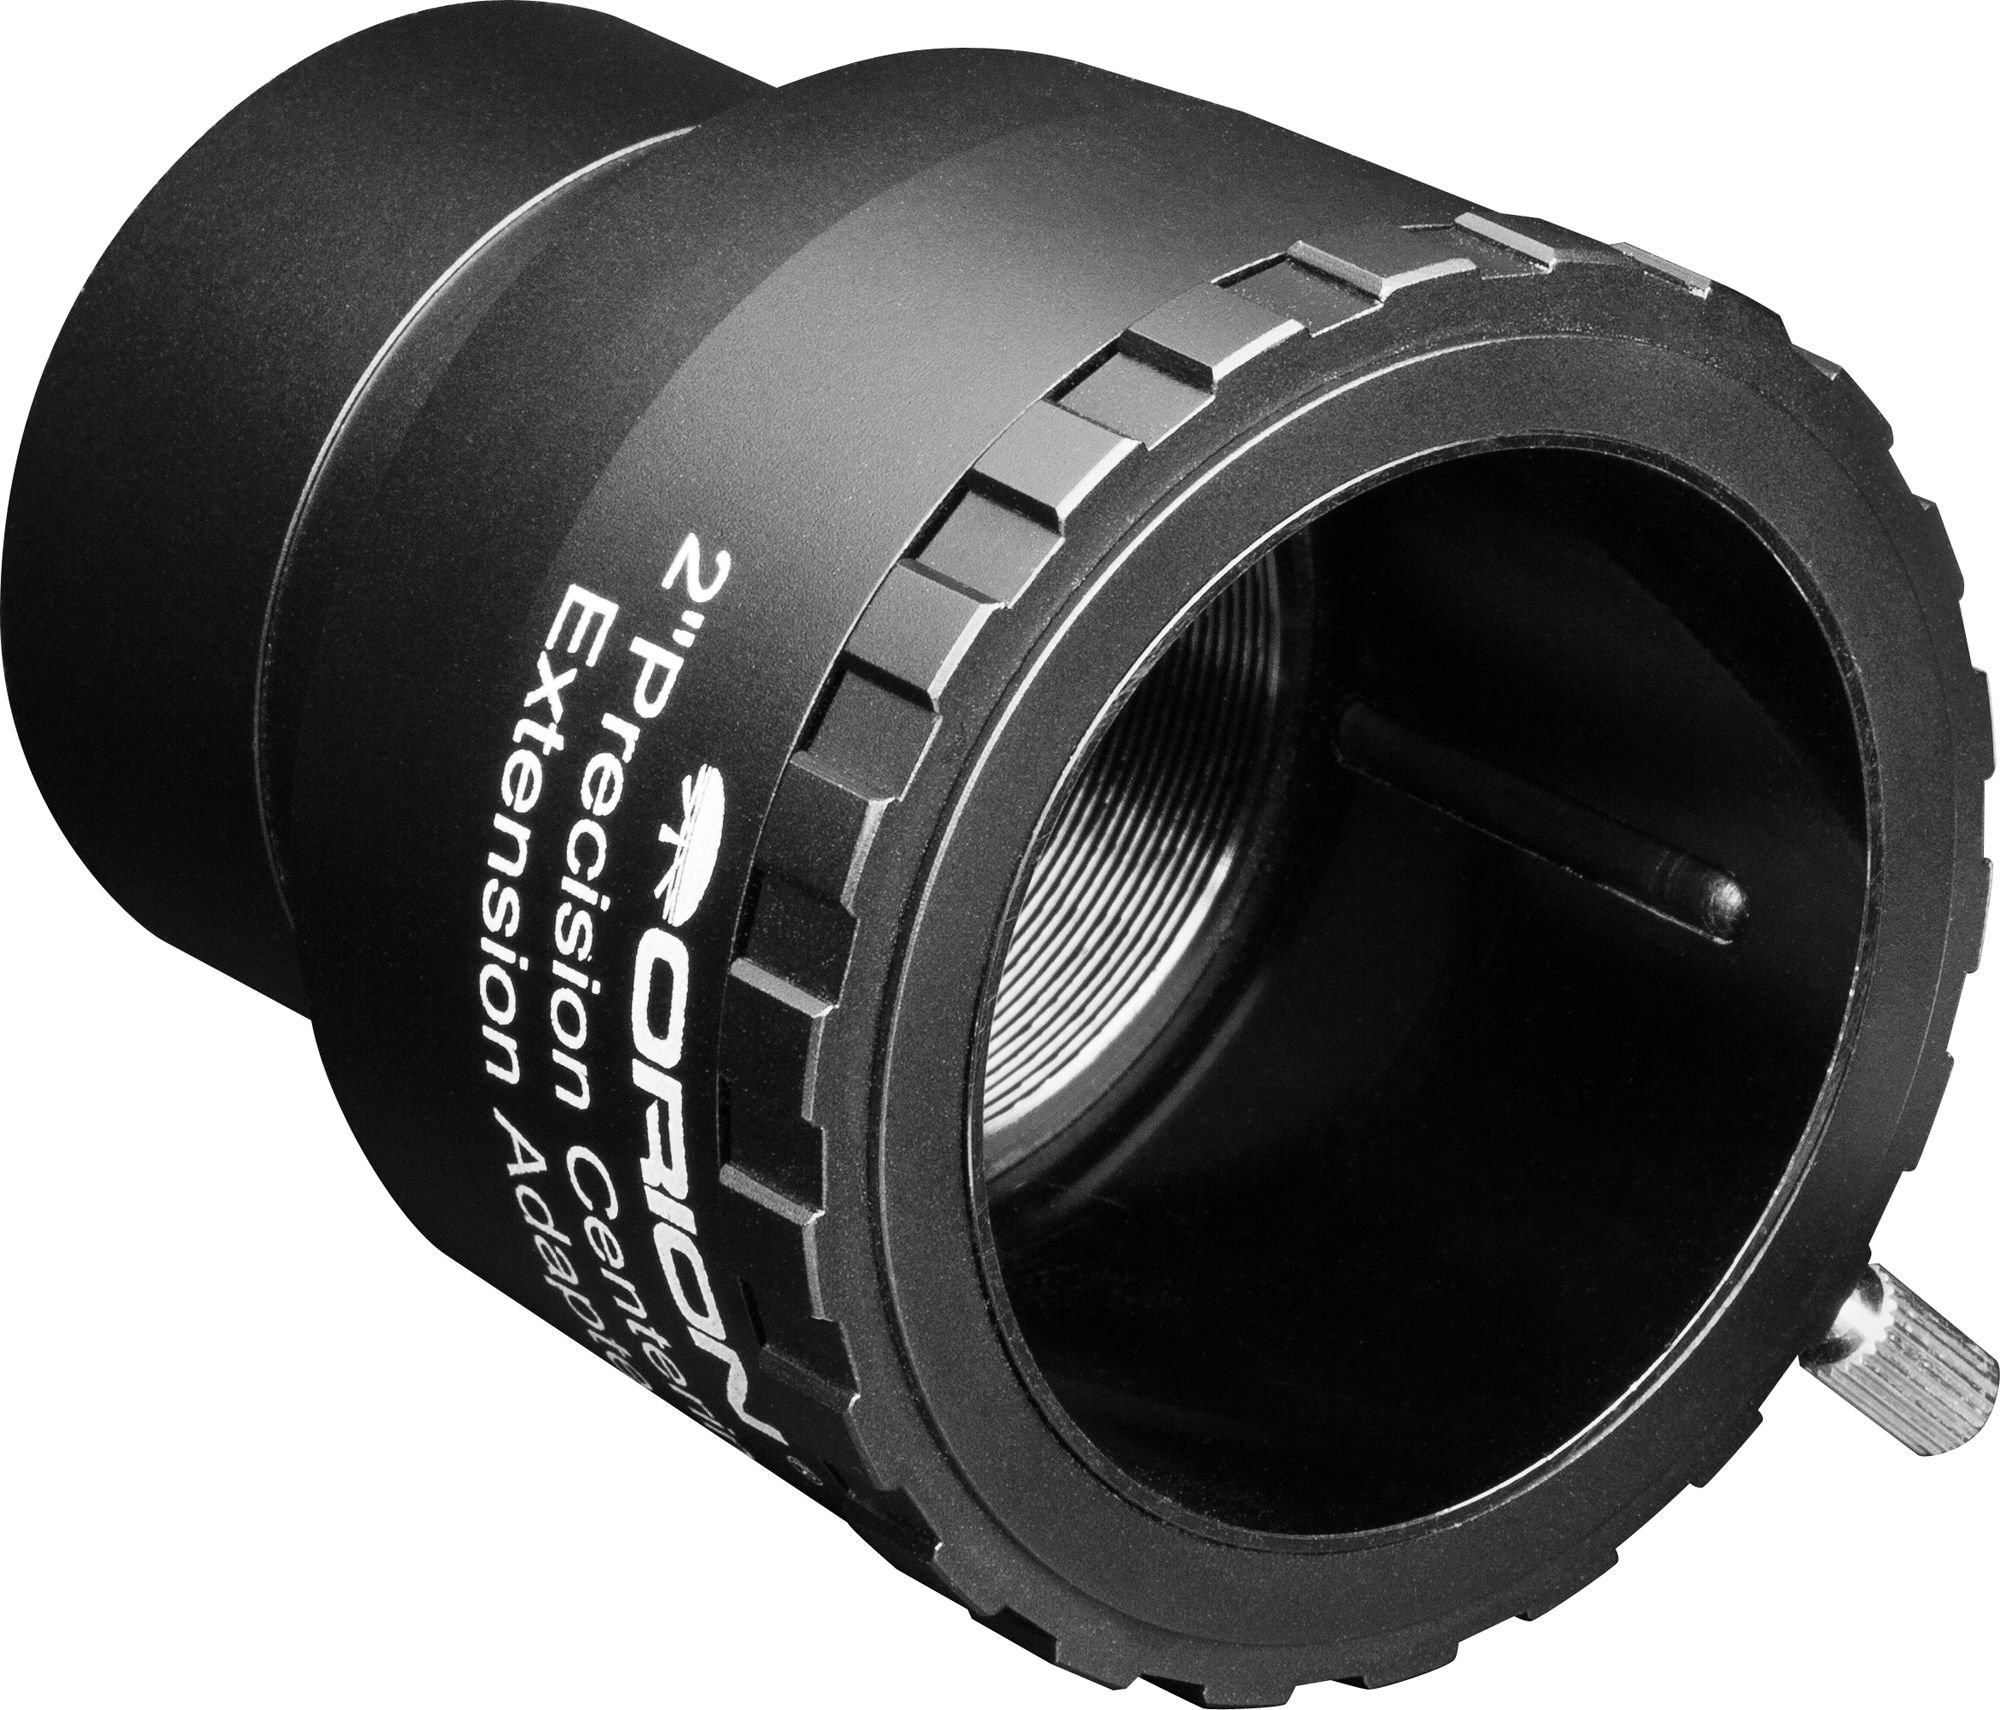 Orion 52026 2-Inch Precision Centering Extension Adapter (Black)